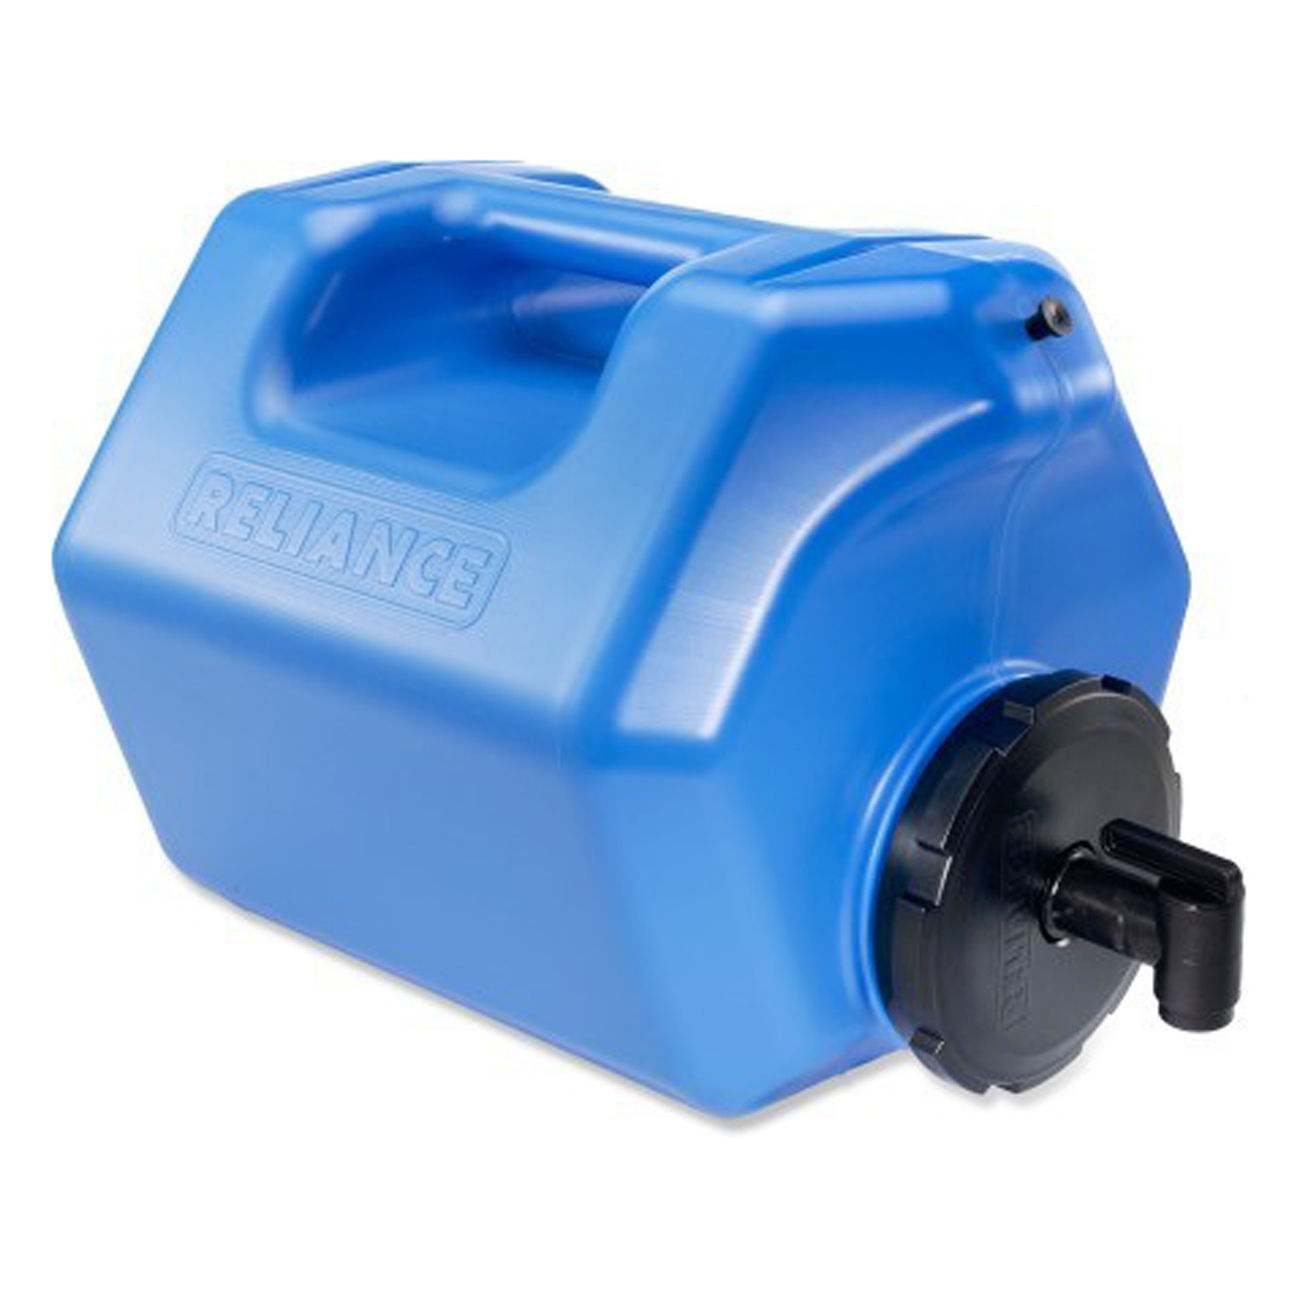 Reliance Kanister Buddy 15 Liter 0